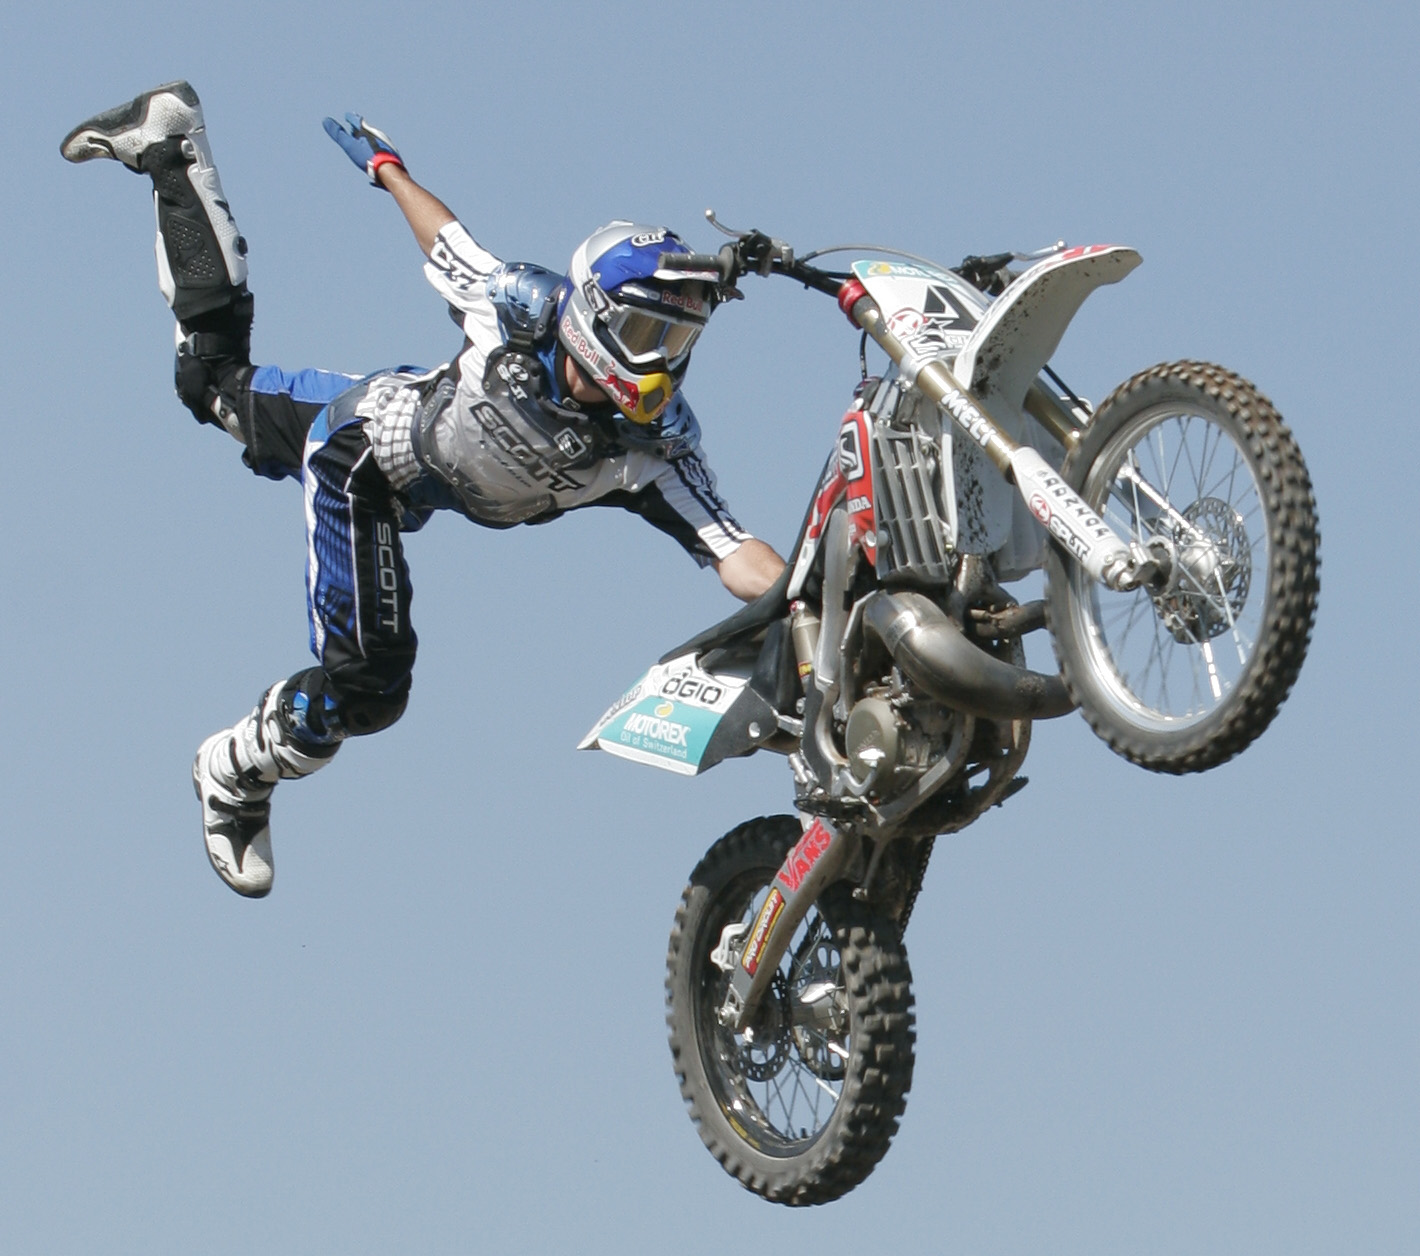 freestyle motocross pictures diverse information. Black Bedroom Furniture Sets. Home Design Ideas